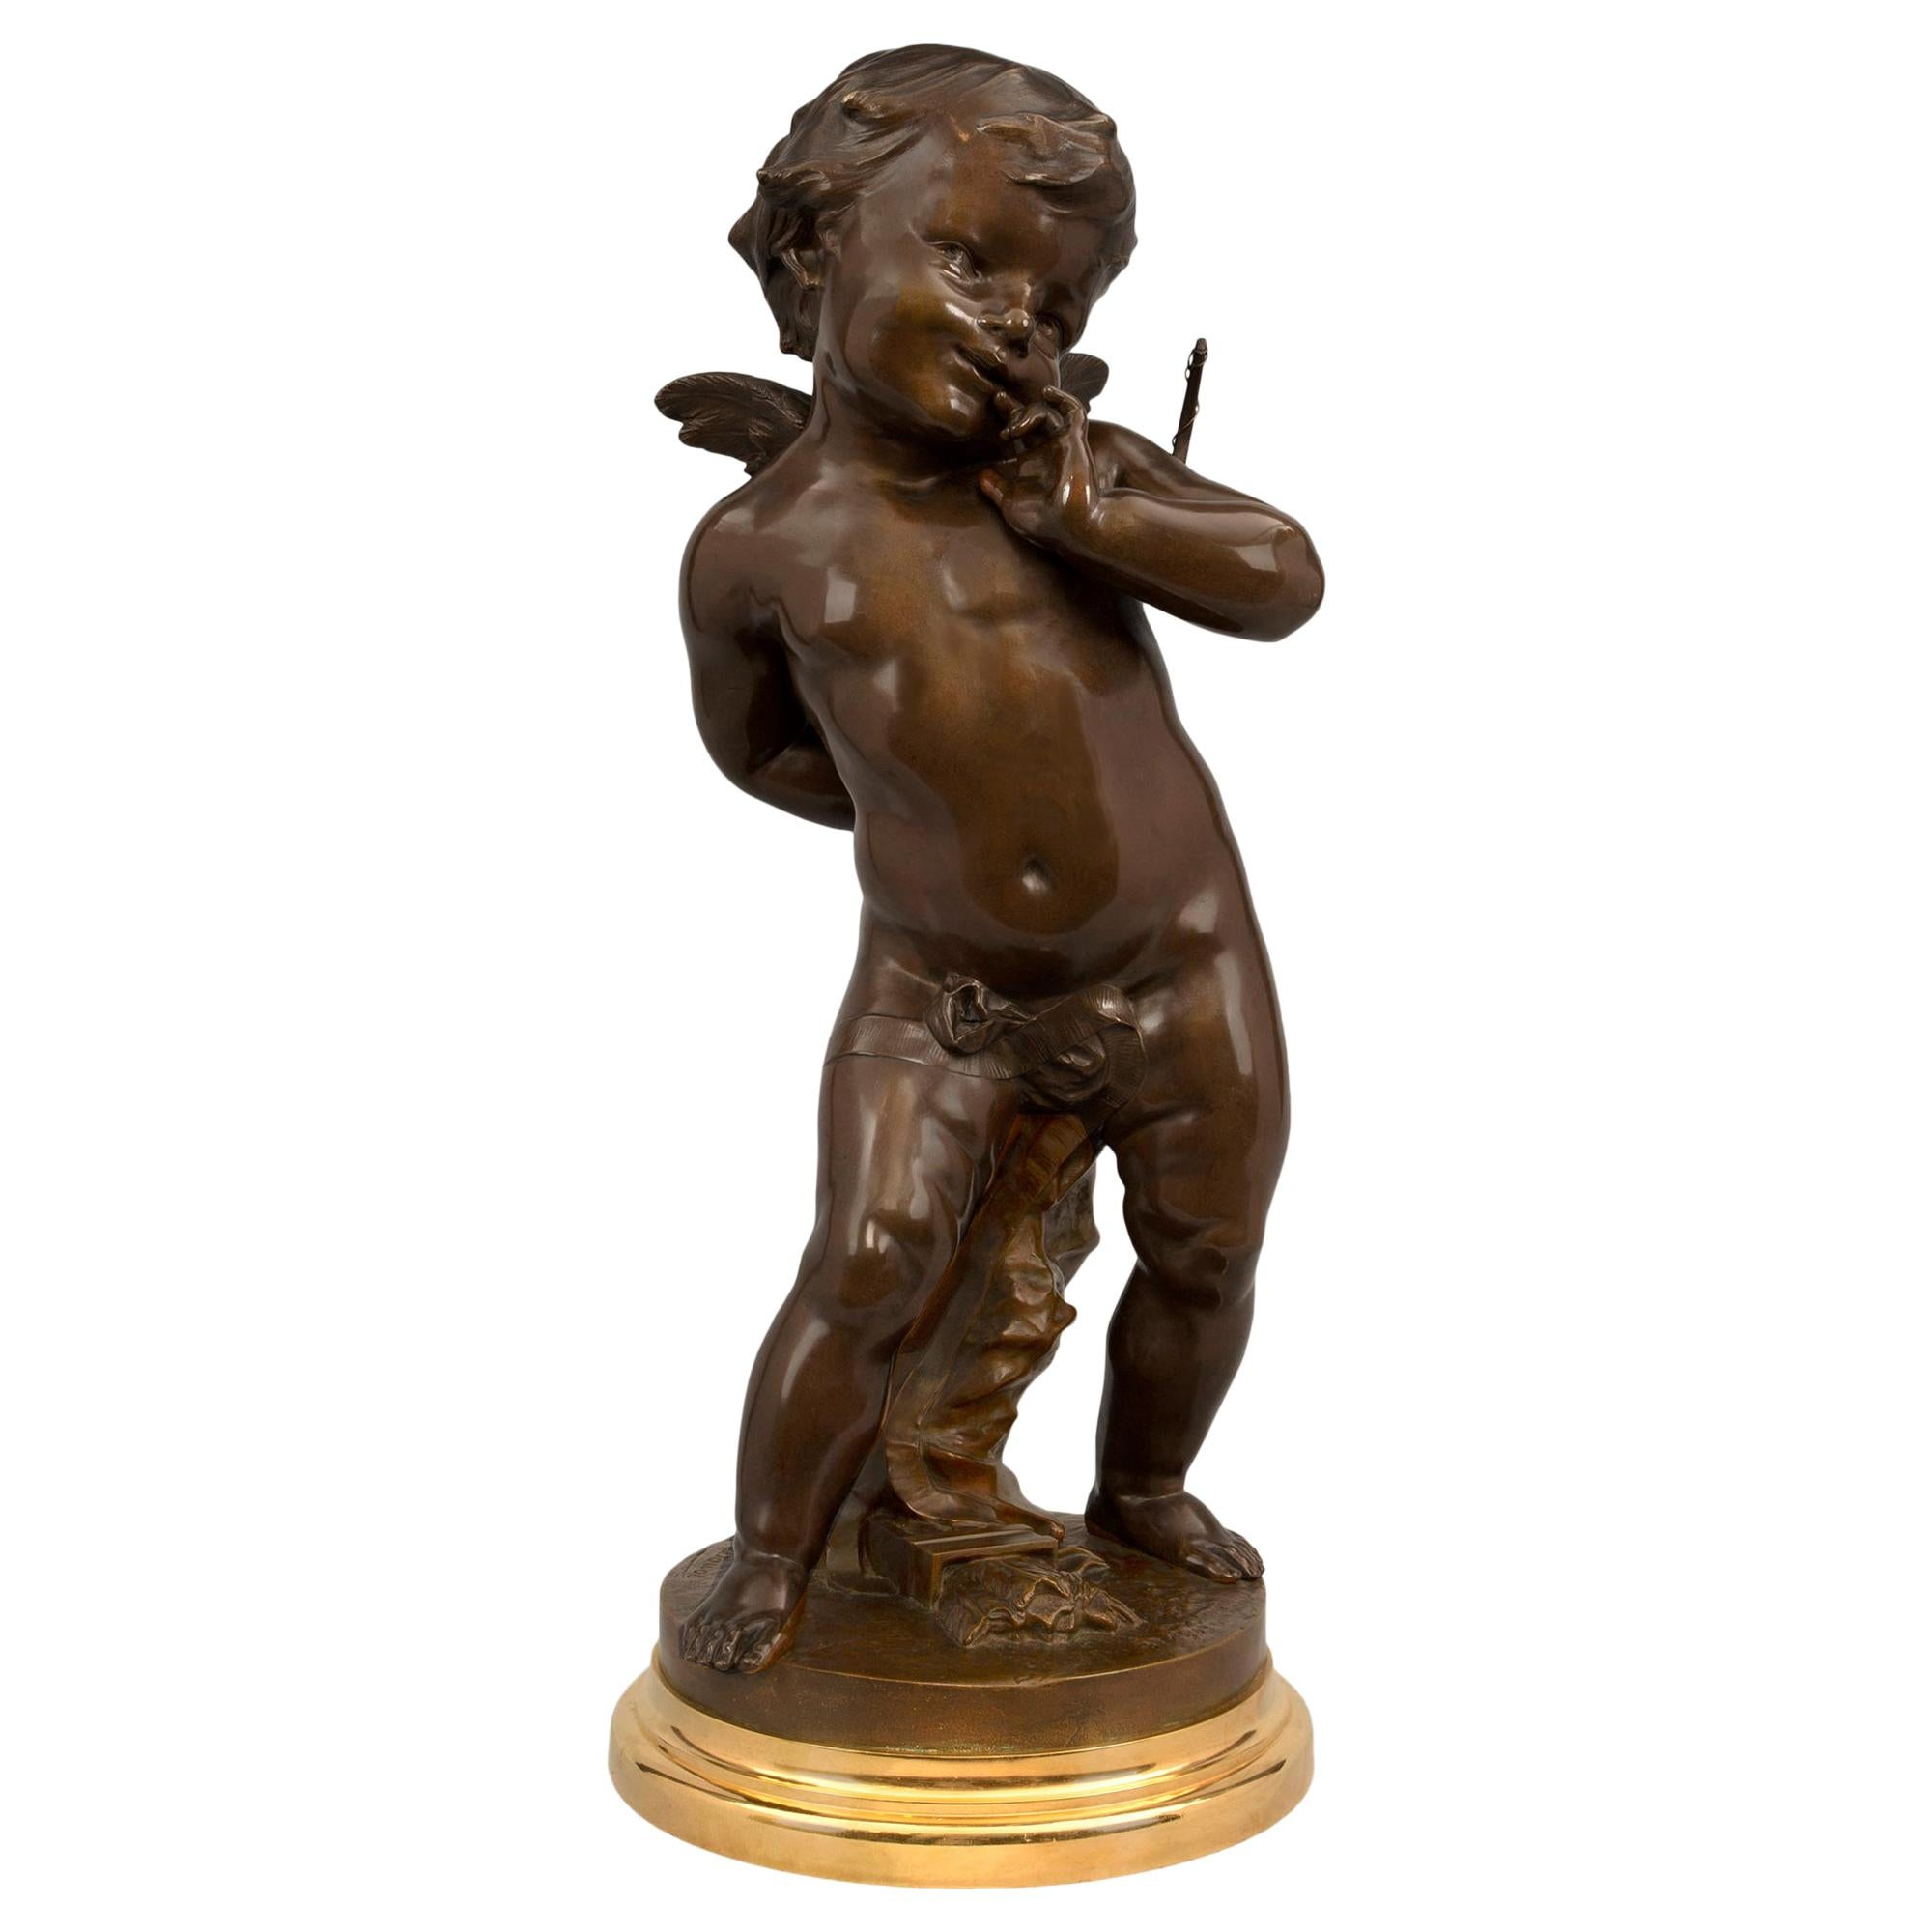 French 19th Century Louis XVI Style Patinated Bronze and Ormolu Statue